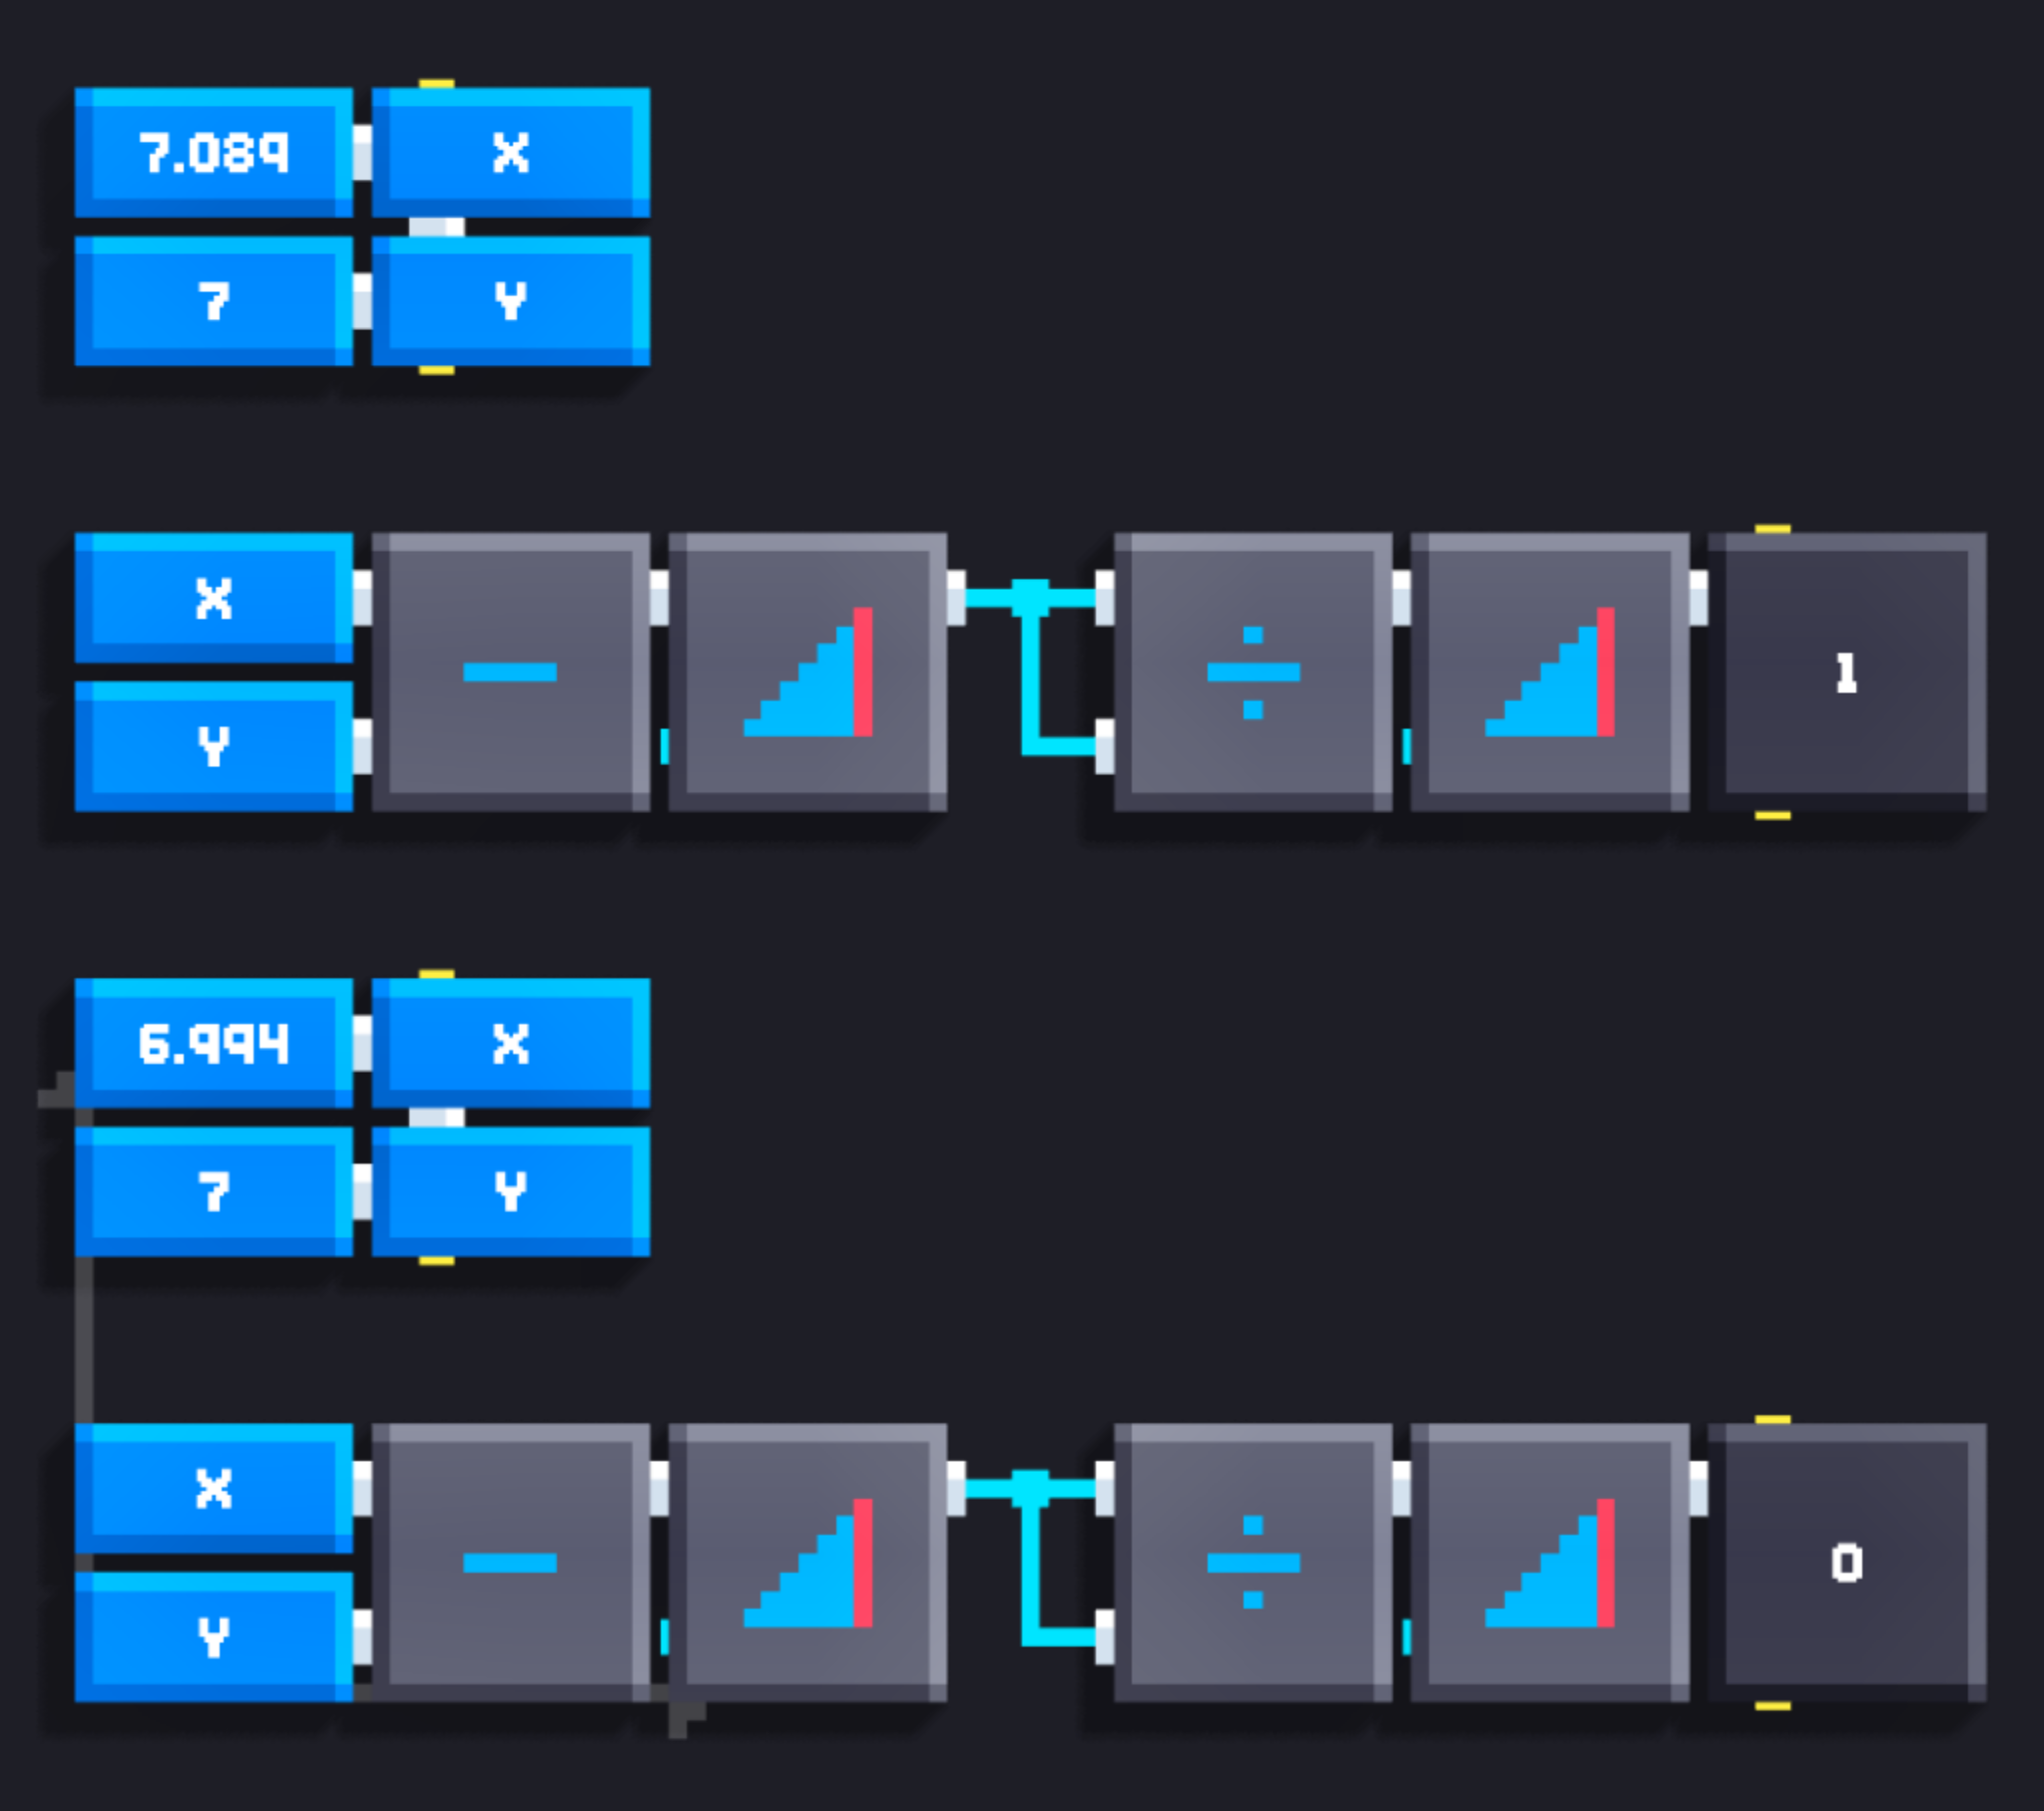 Can I avoid using IF for X greater than Y